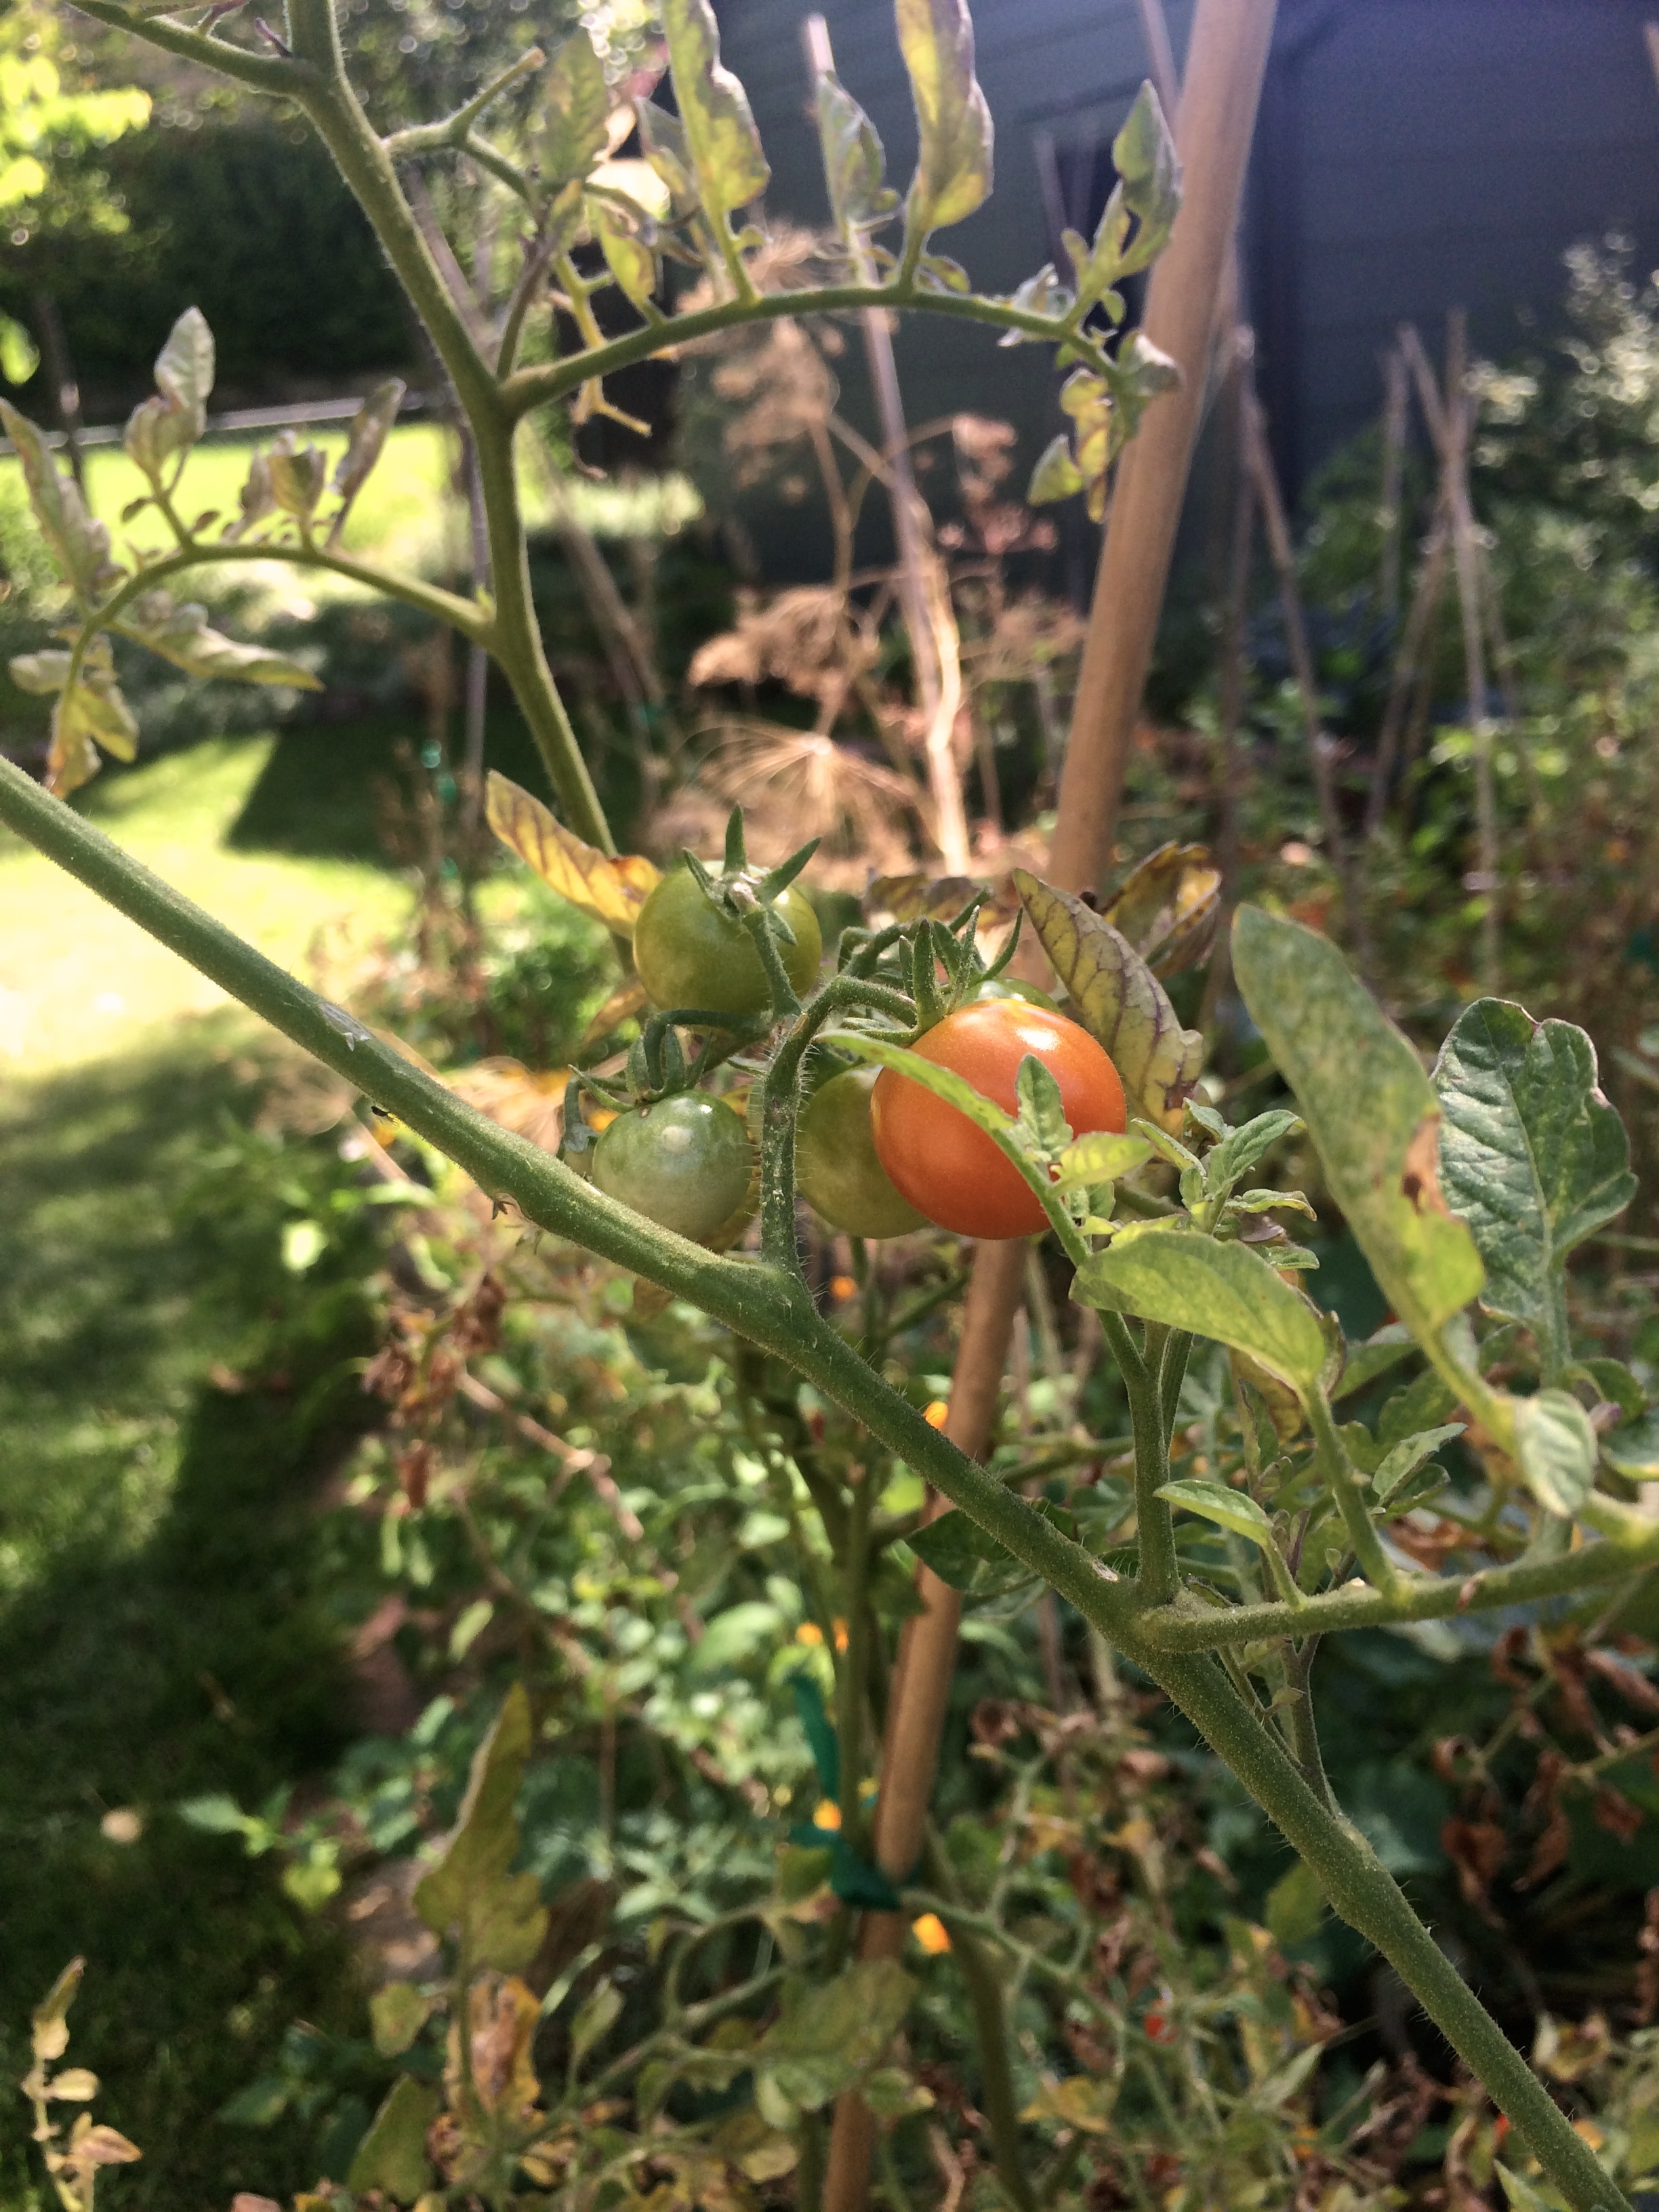 cherry tomatoes ripening in the sun